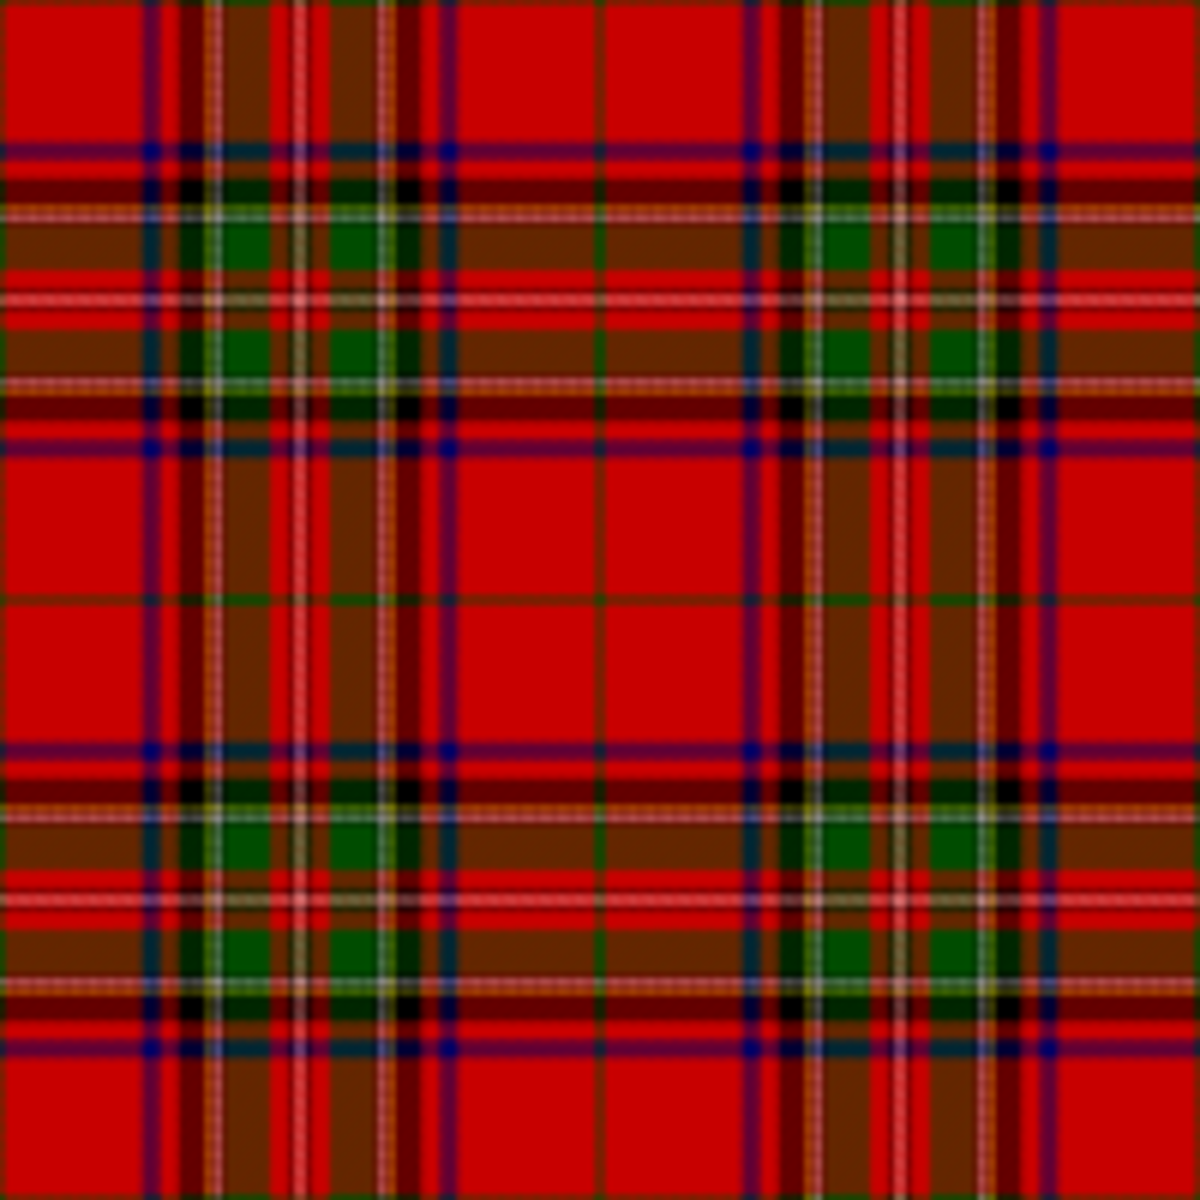 An example of a Scottish tartan, originally woven from wool. Tartans were worn either as kilts or as a shawl slung over the shoulder.